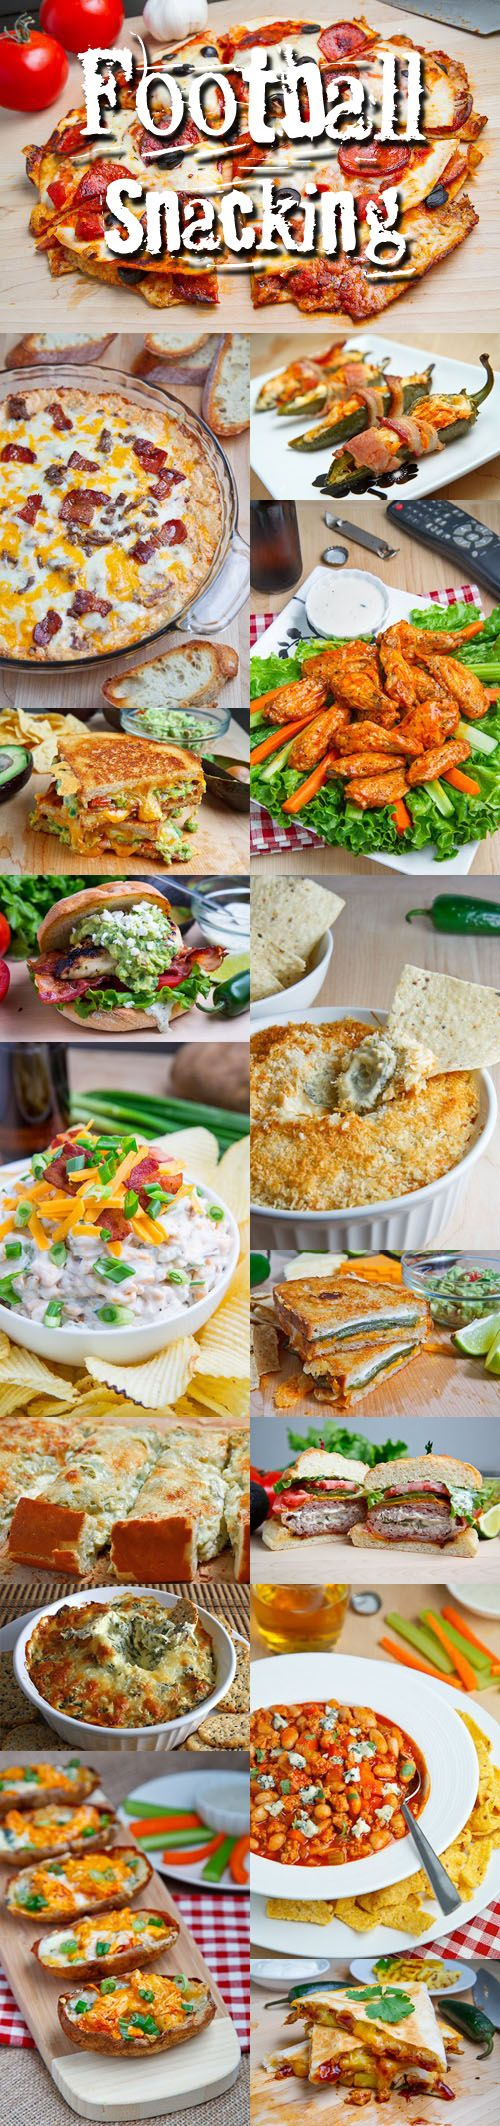 FOOTBALL SEASON SNACKING: ~ Recipe Courtesy of Kevin Lynch. ~ Over (50) wonderful snacking recipes to enjoy.